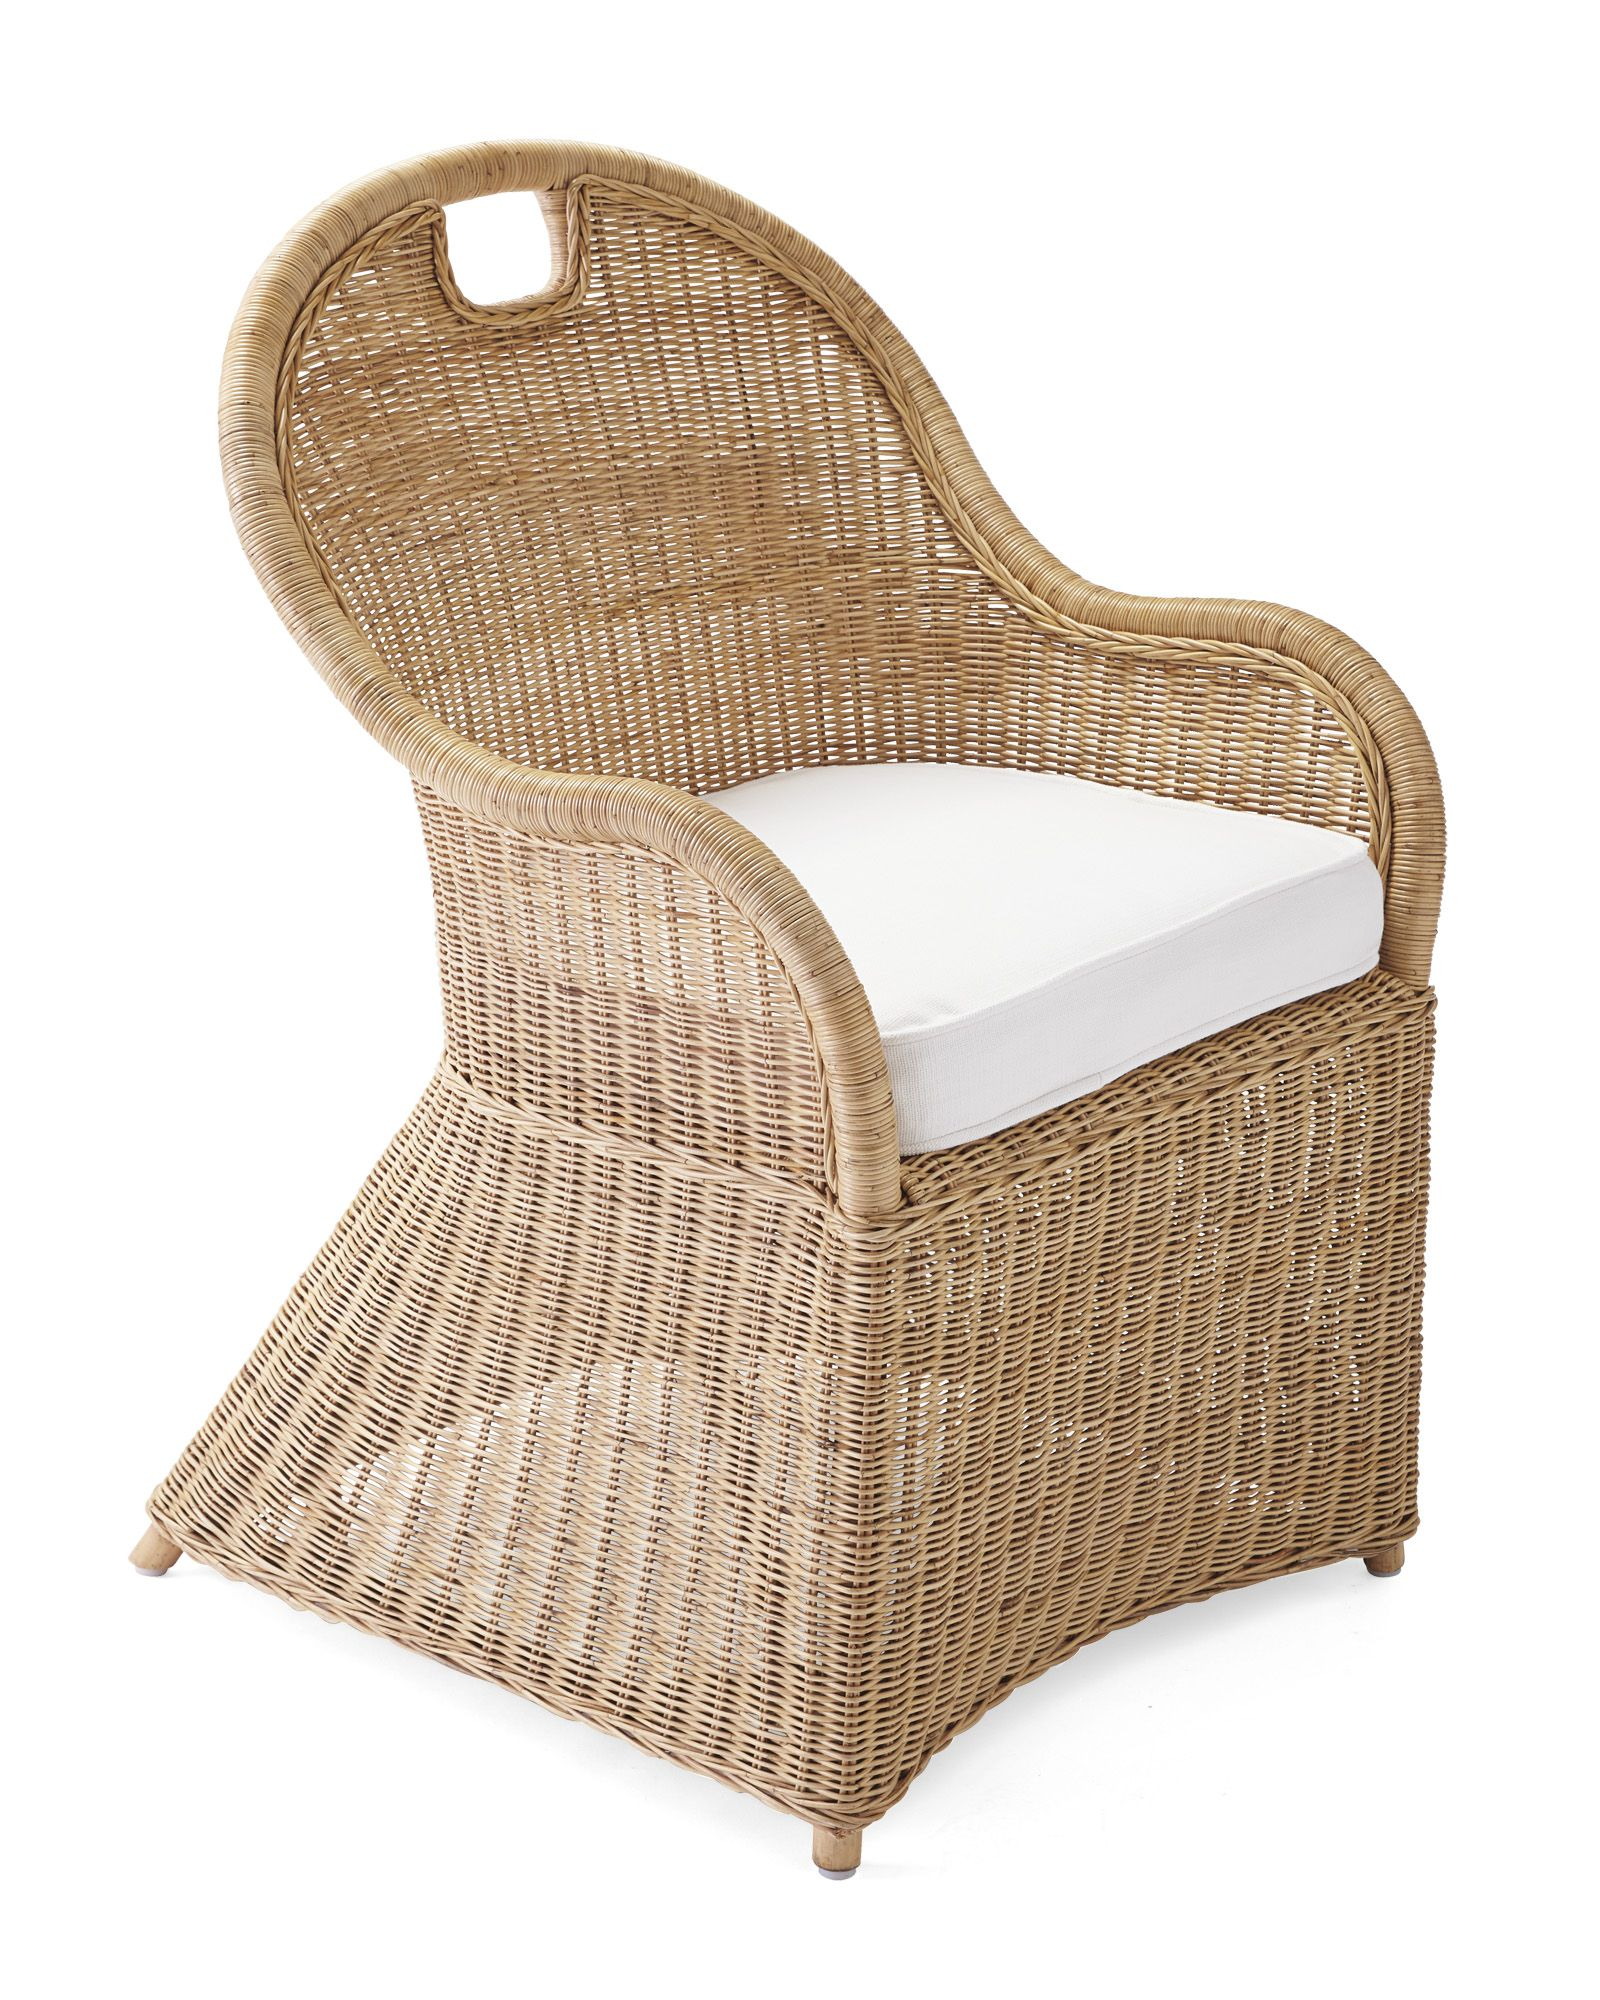 Shore Dining Chair with Cushion via Serena & Lily Dining